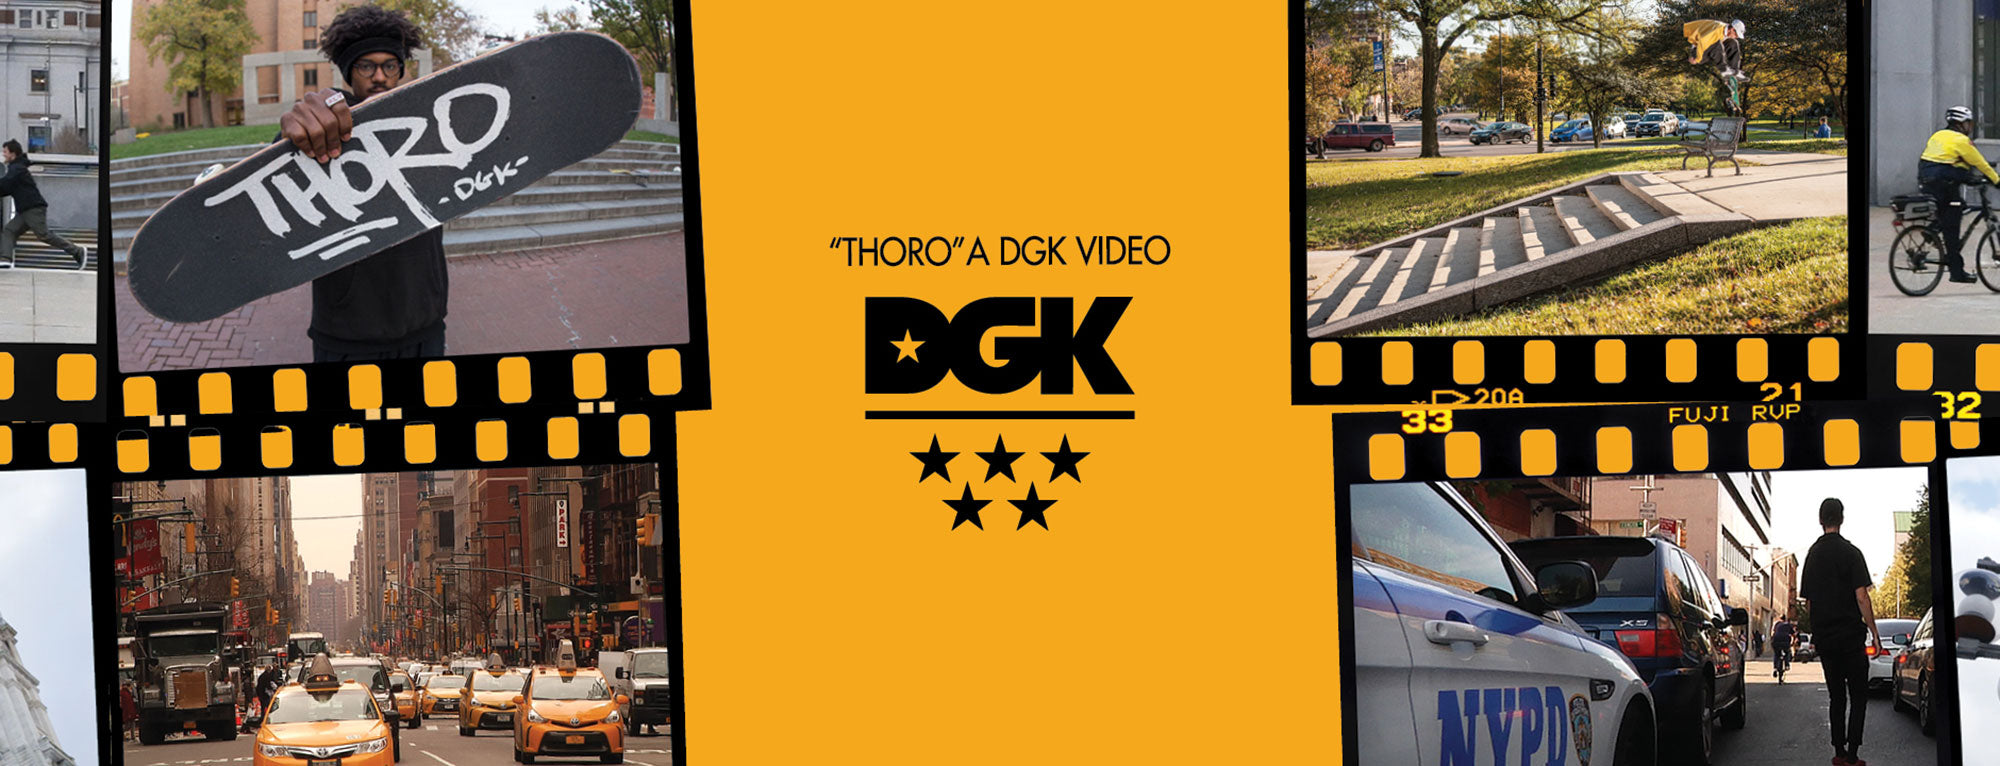 DGKALLDAY COM | Skateboard & Apparel Store